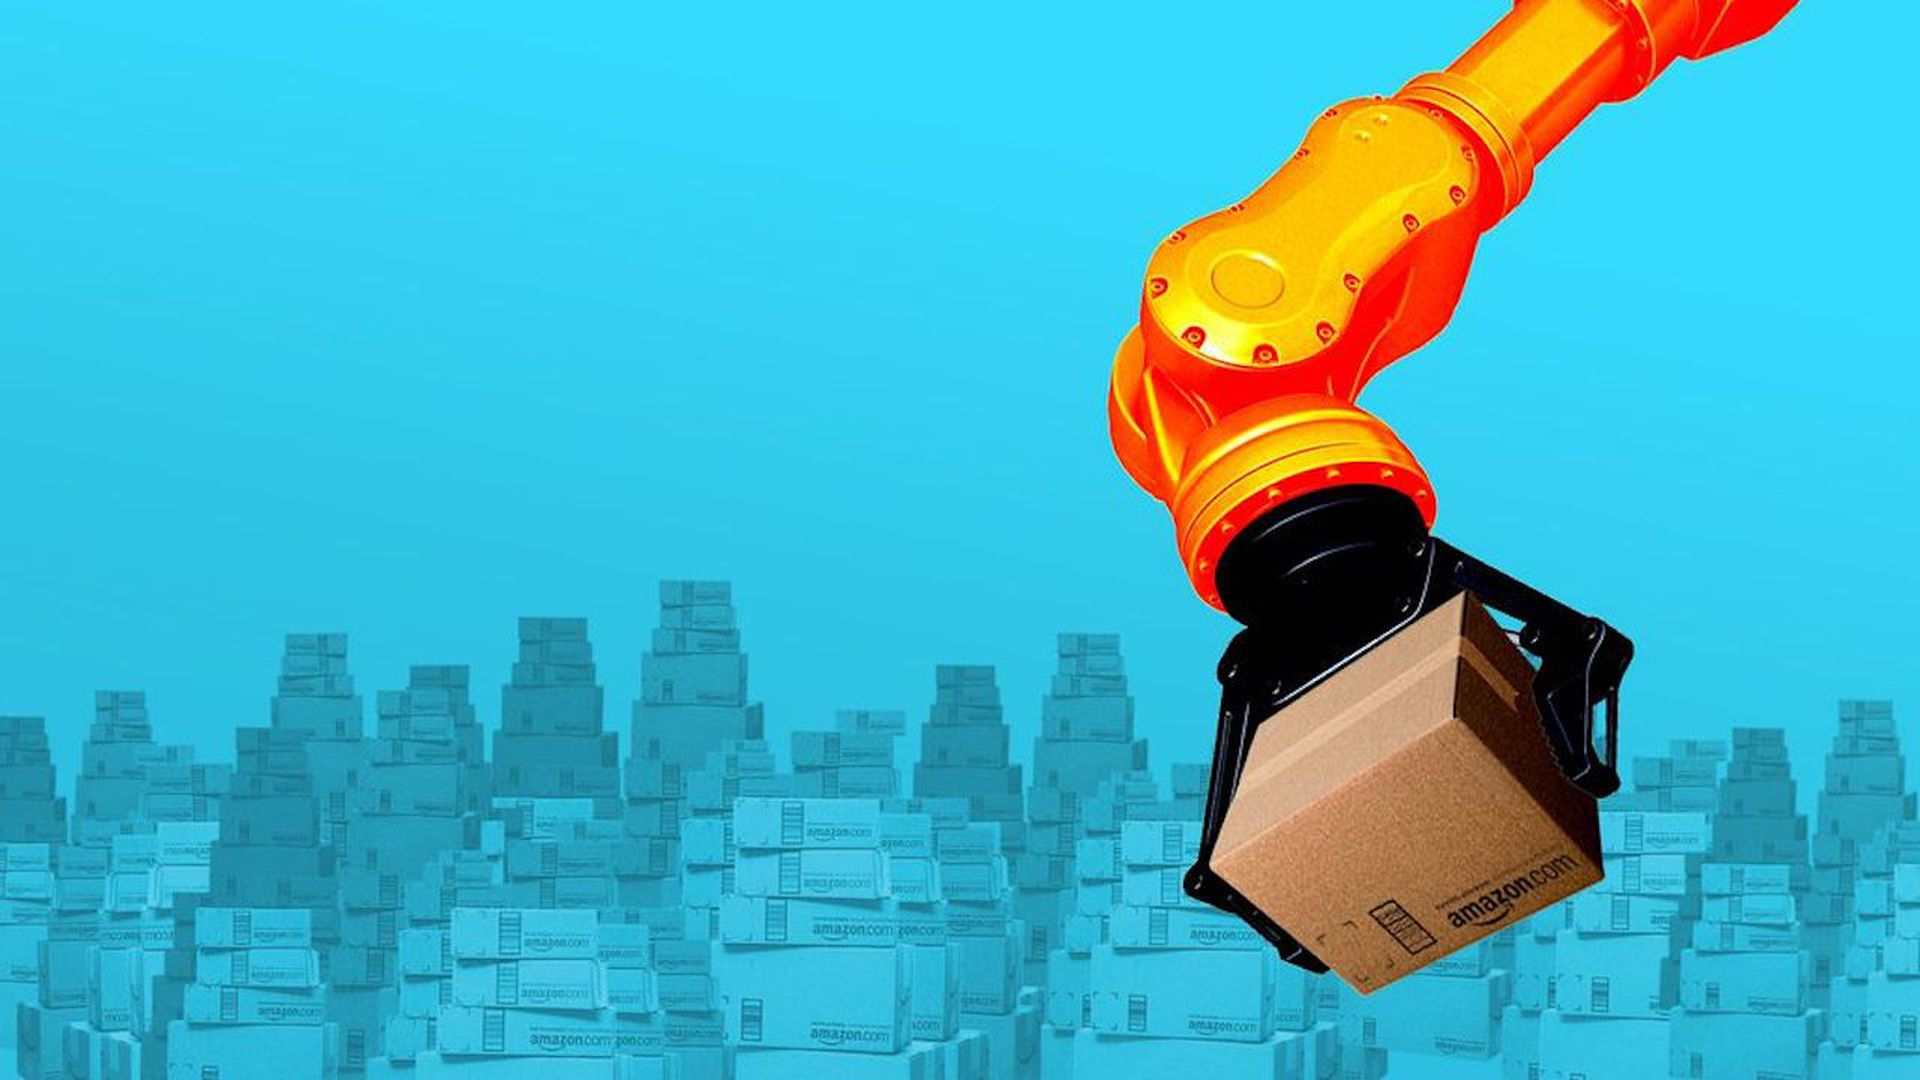 Amazon robot arm with package